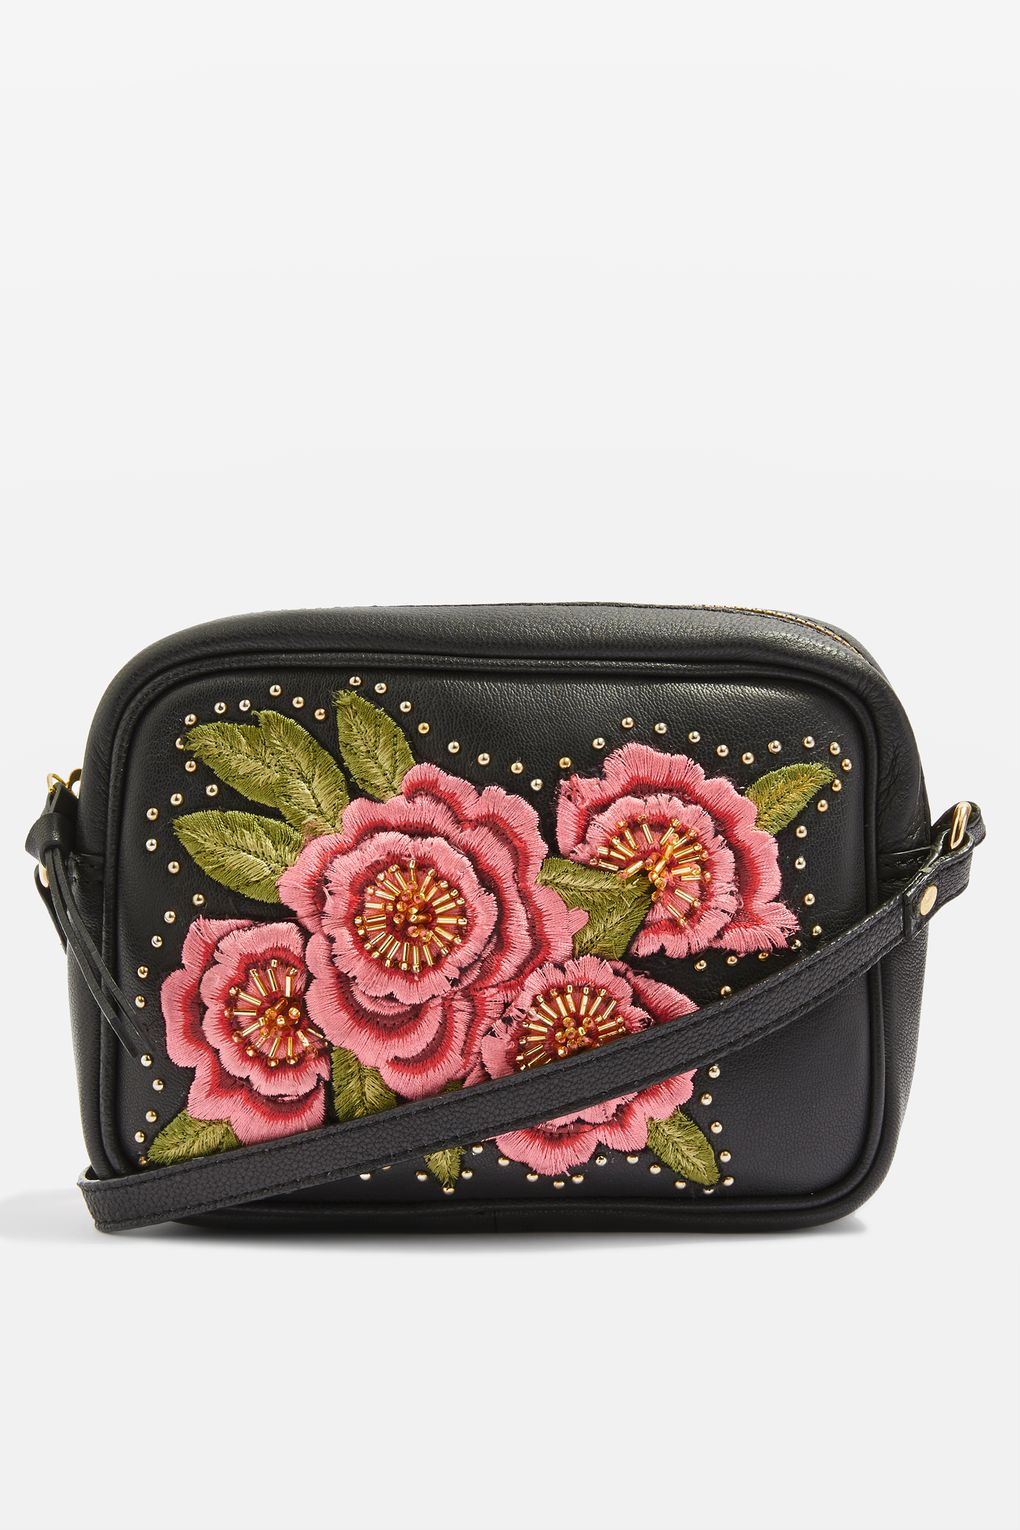 http://www.topshop.com/en/tsuk/product/floral-embroidered-leather-cross-body-bag-6991657?bi=0&ps=20&Ntt=embroidery